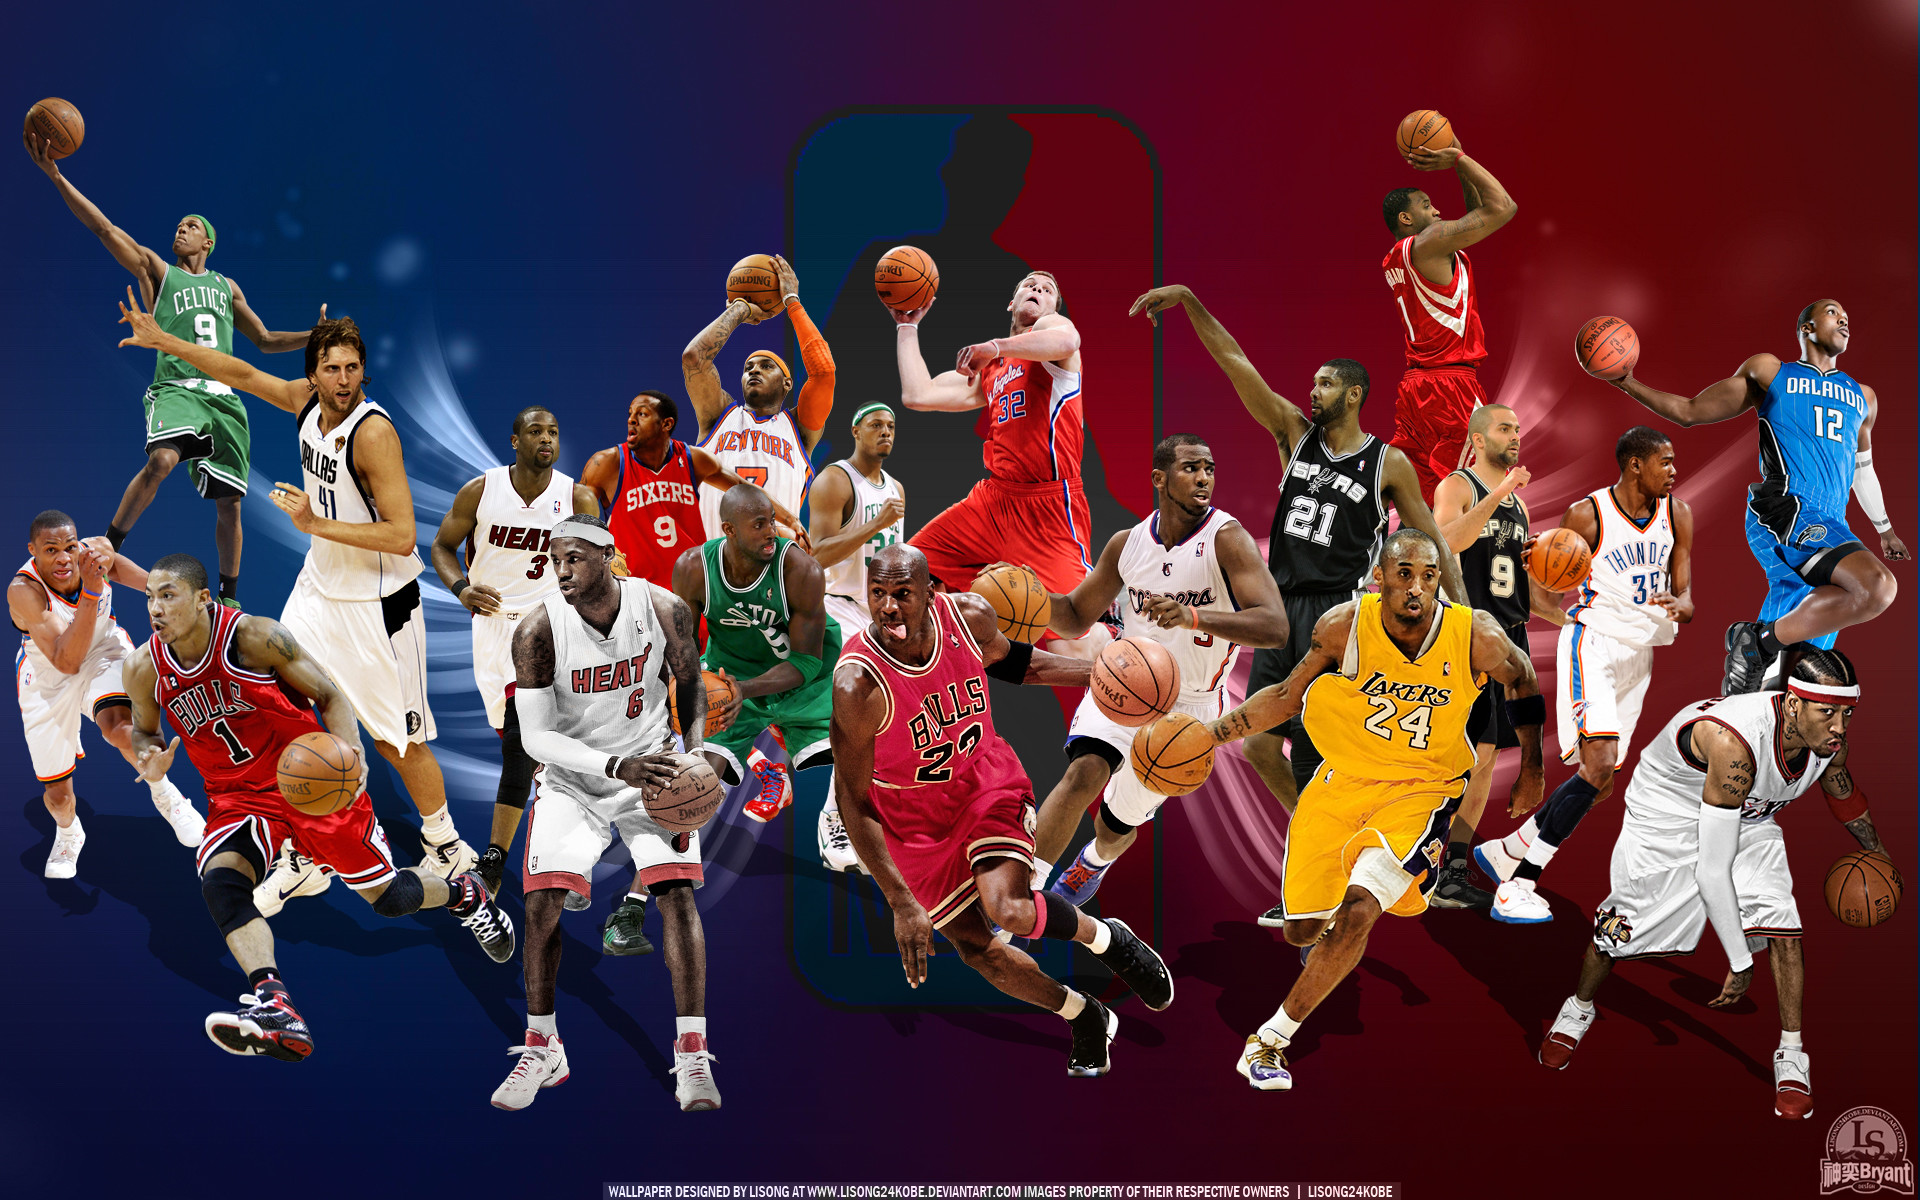 Cool Basketball Wallpapers For IPhone (60+ Images